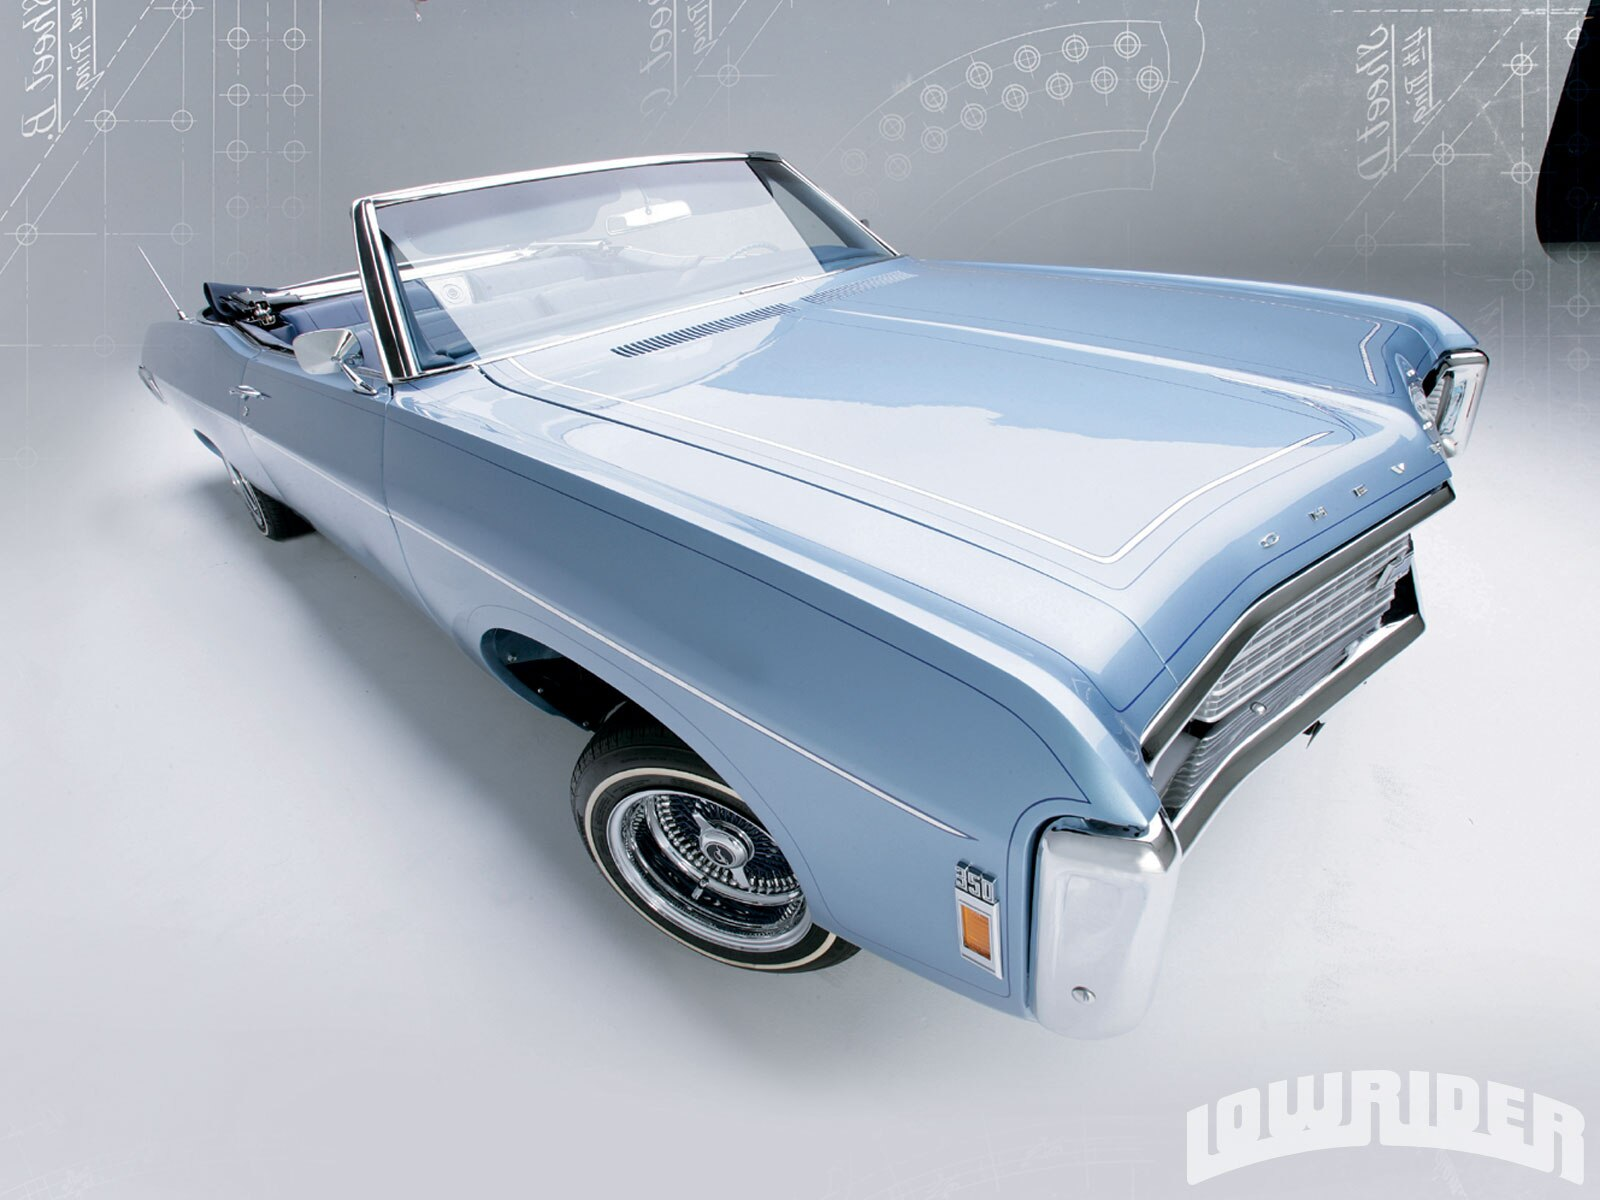 lrmp-1011-02-o-1969-chevy-impala-passenger-side-front-view1